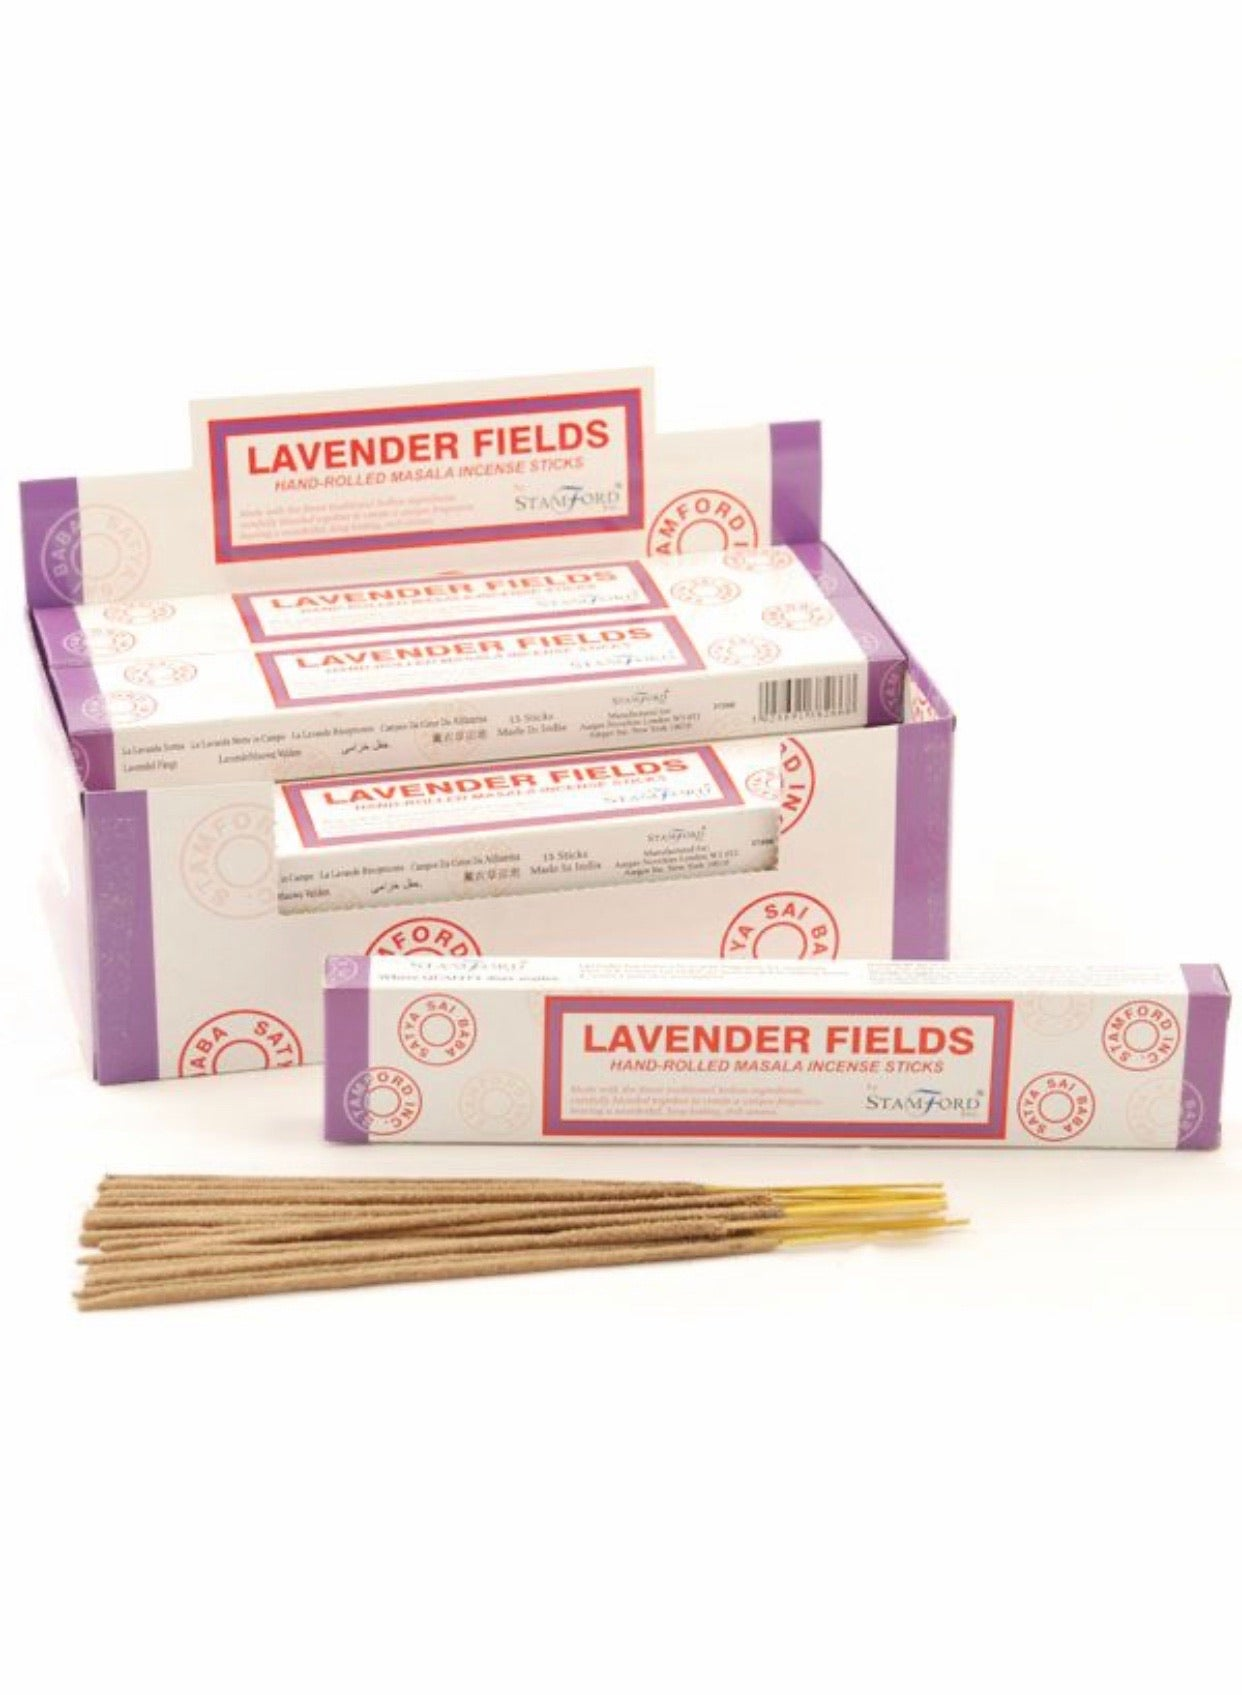 Stamford Masala Incense Sticks - Lavender Field